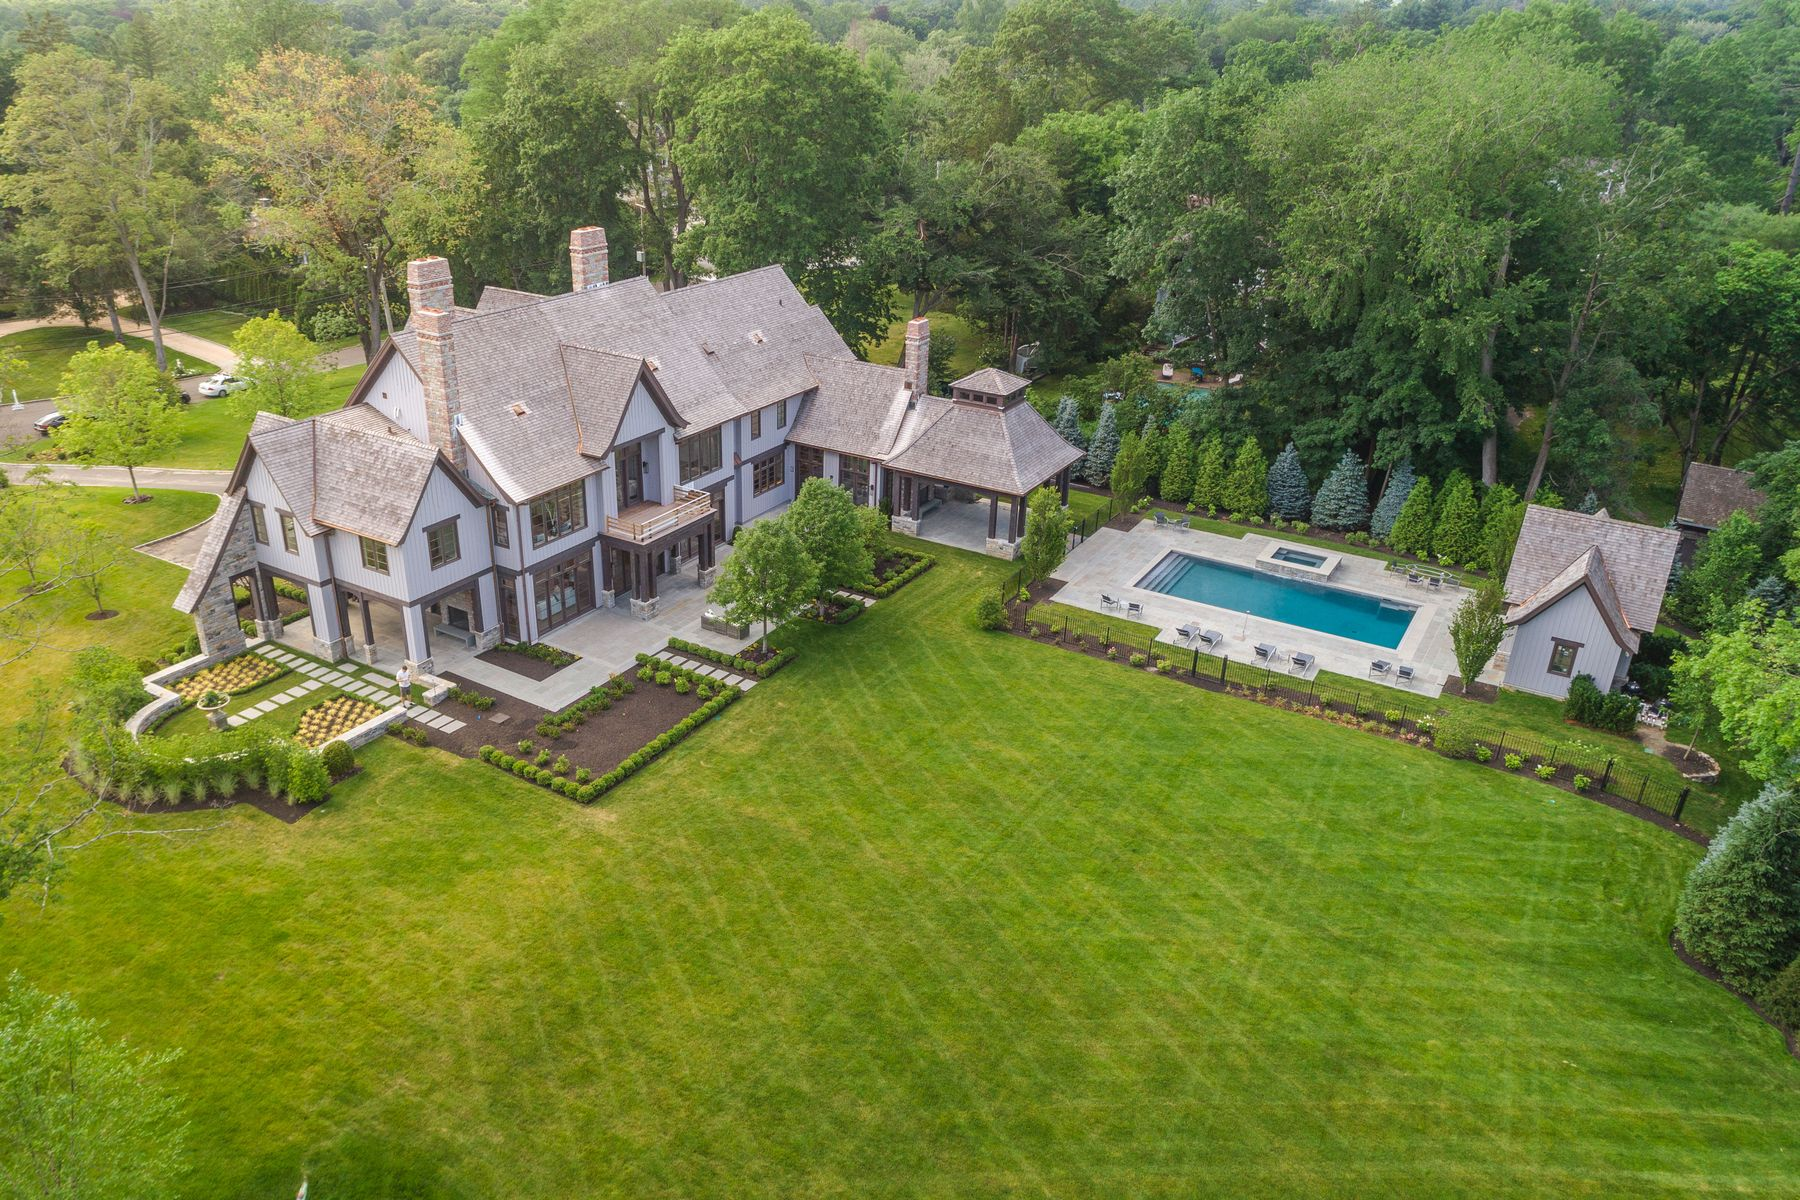 Single Family Homes for Sale at In-Town New Construction 19 Meadow Drive Greenwich, Connecticut 06830 United States